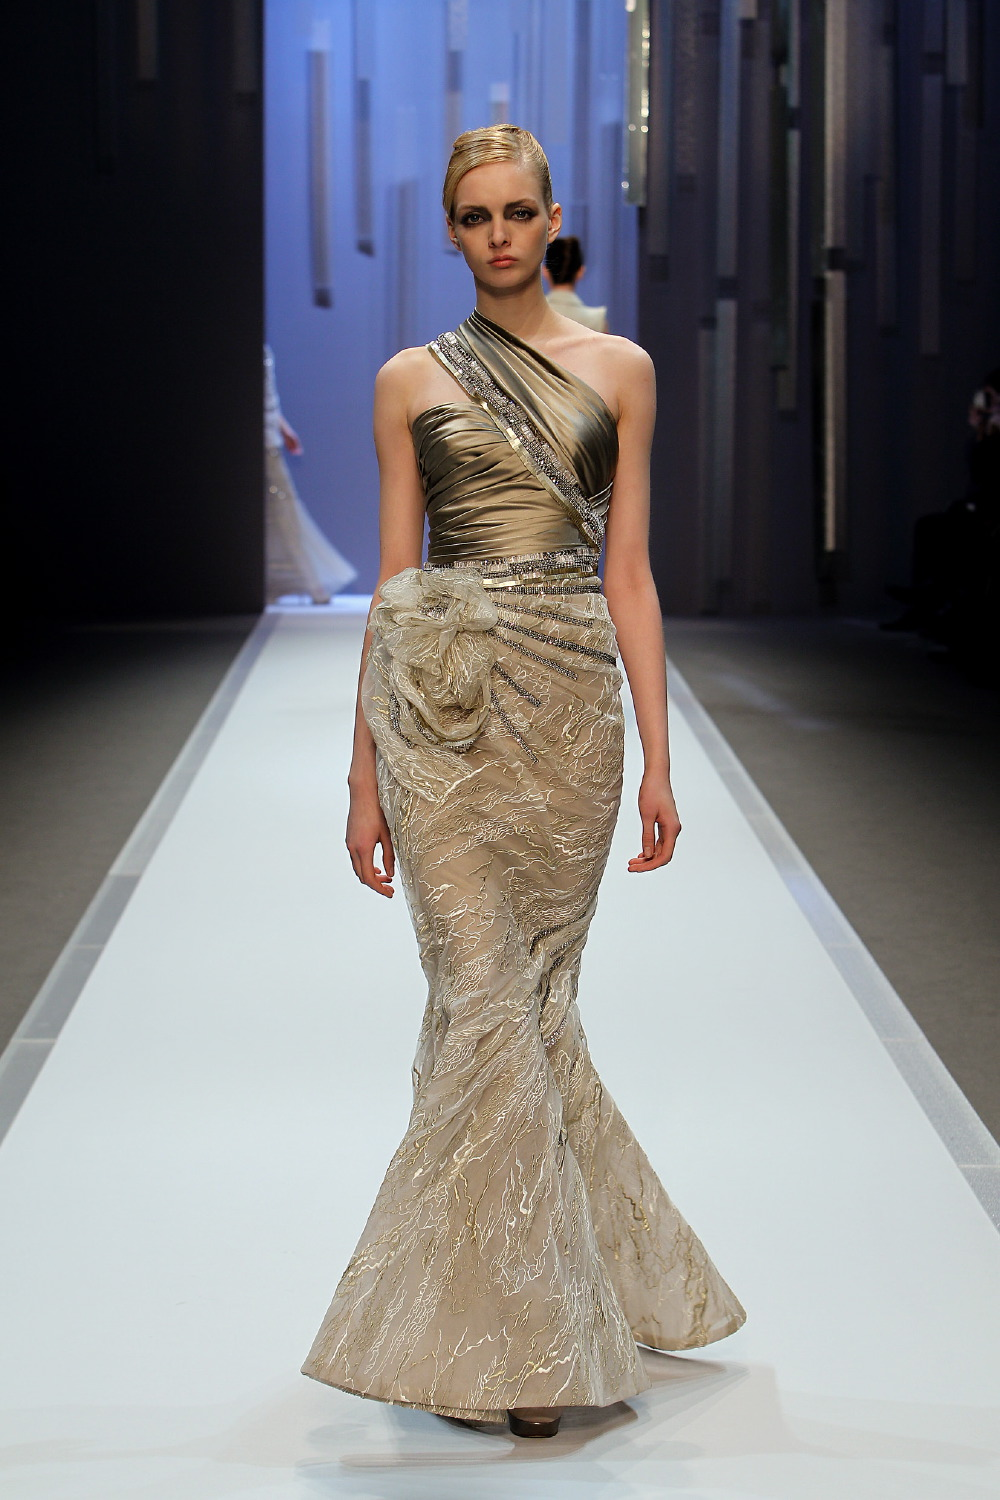 Basil soda haute couture spring 2010 greek goddess for New haute couture designers